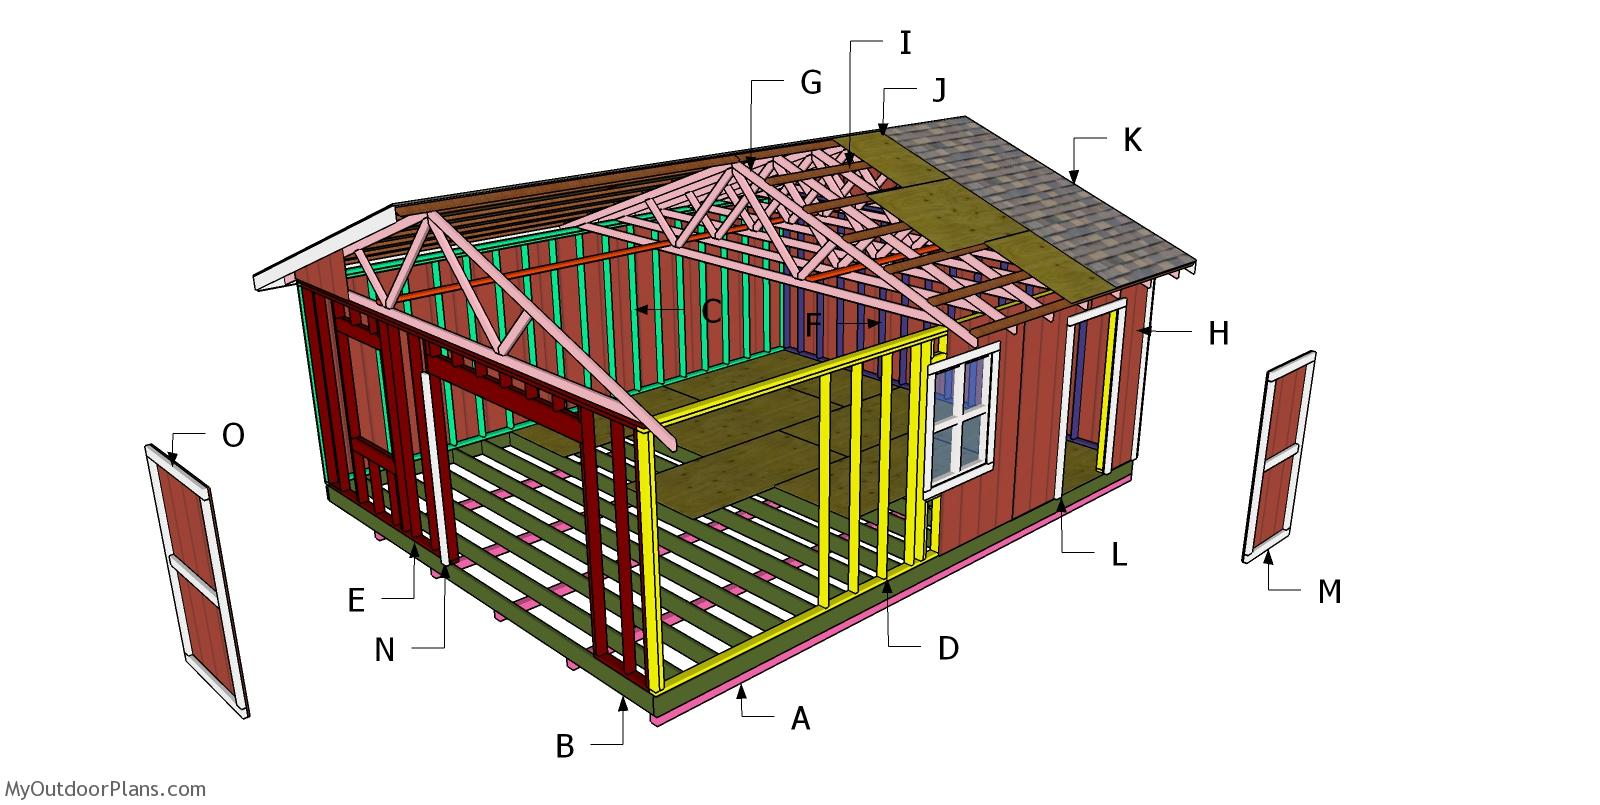 20x24 Gable Shed Roof - Free DIY Plans